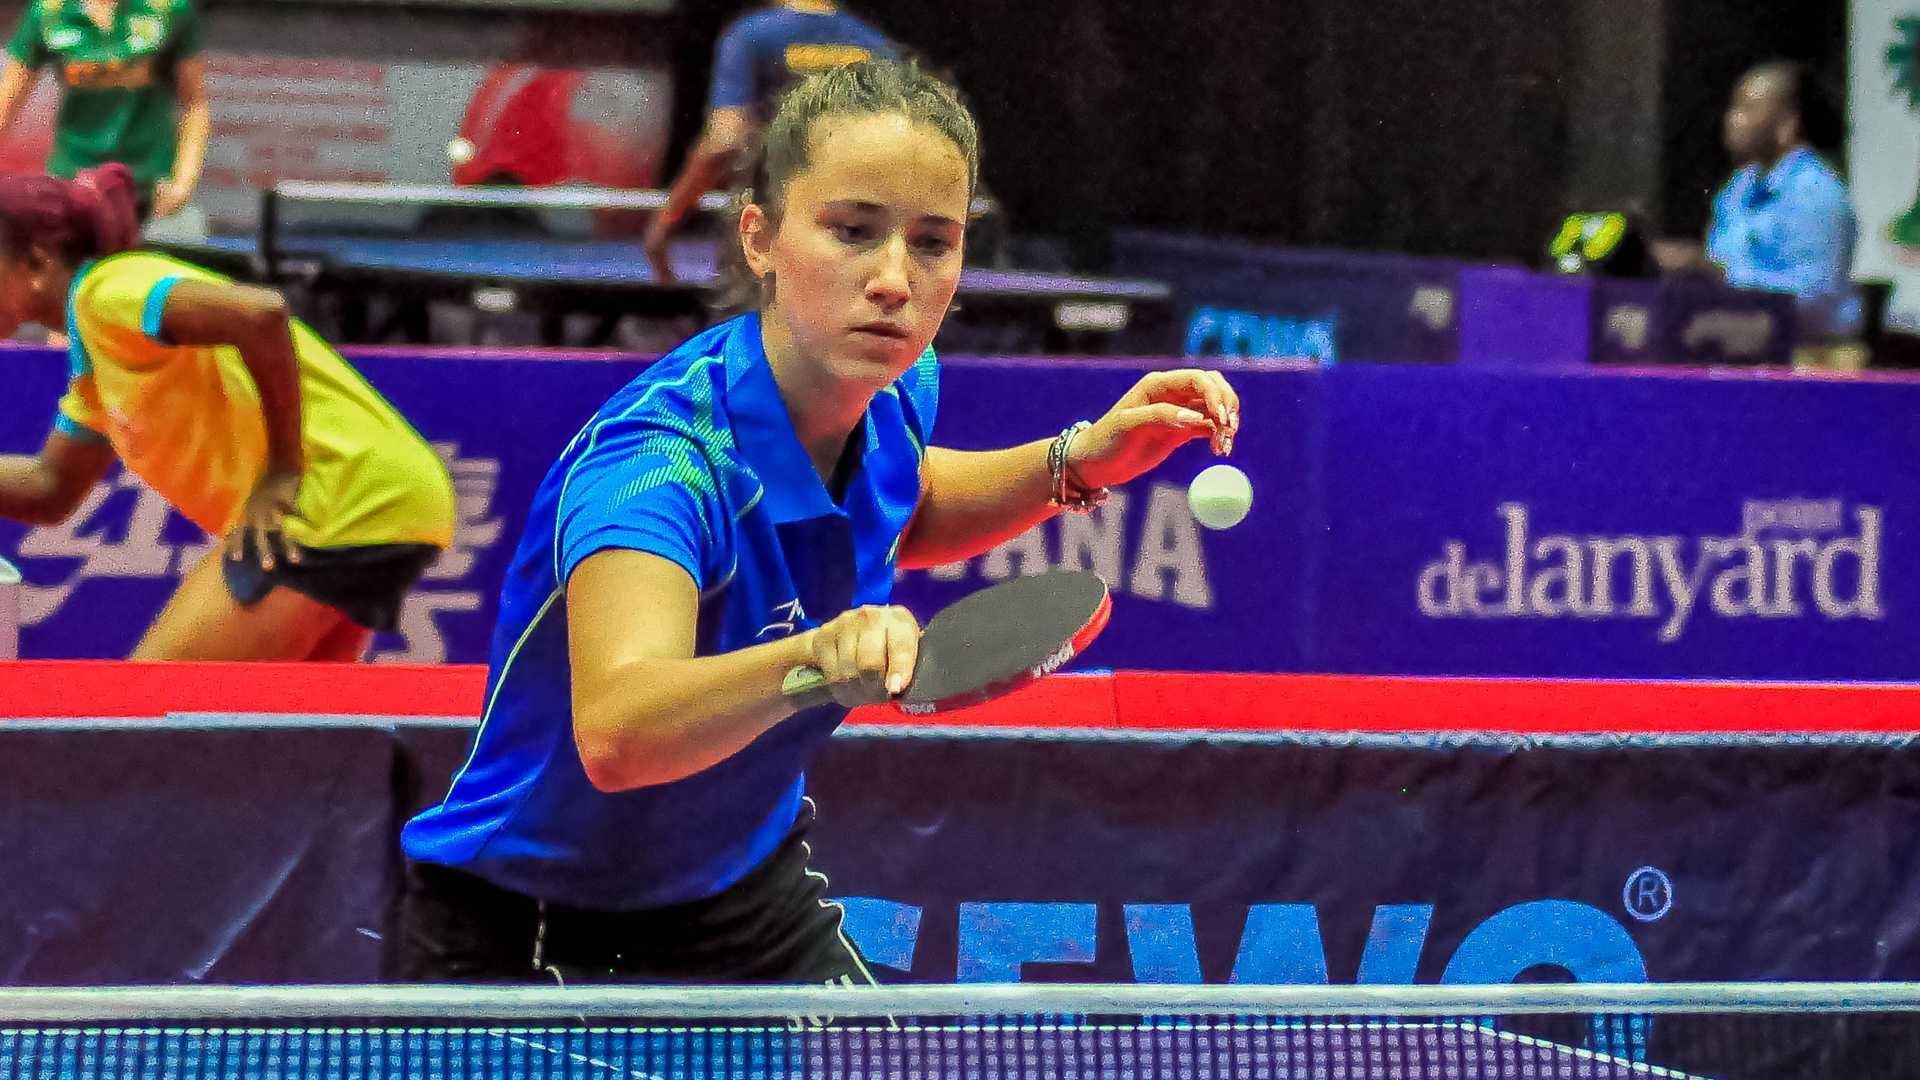 Romania's Andreea Dragoman came through a thrilling seven-game match in the first preliminary round of the women's singles event ©ITTF